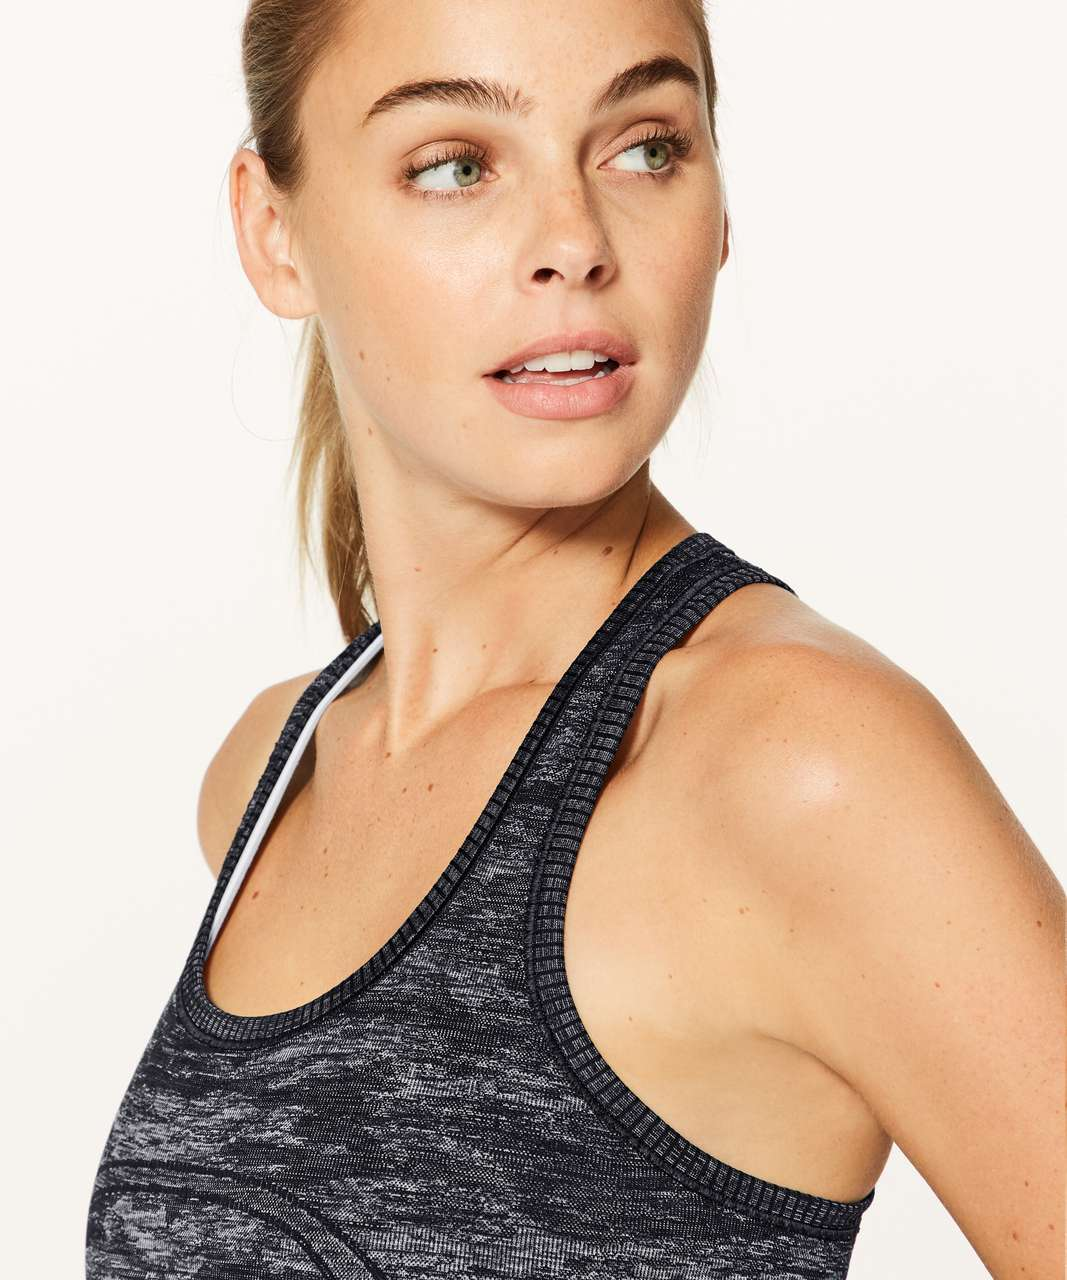 Lululemon Swiftly Tech Racerback - Black / White / Black (Camo)